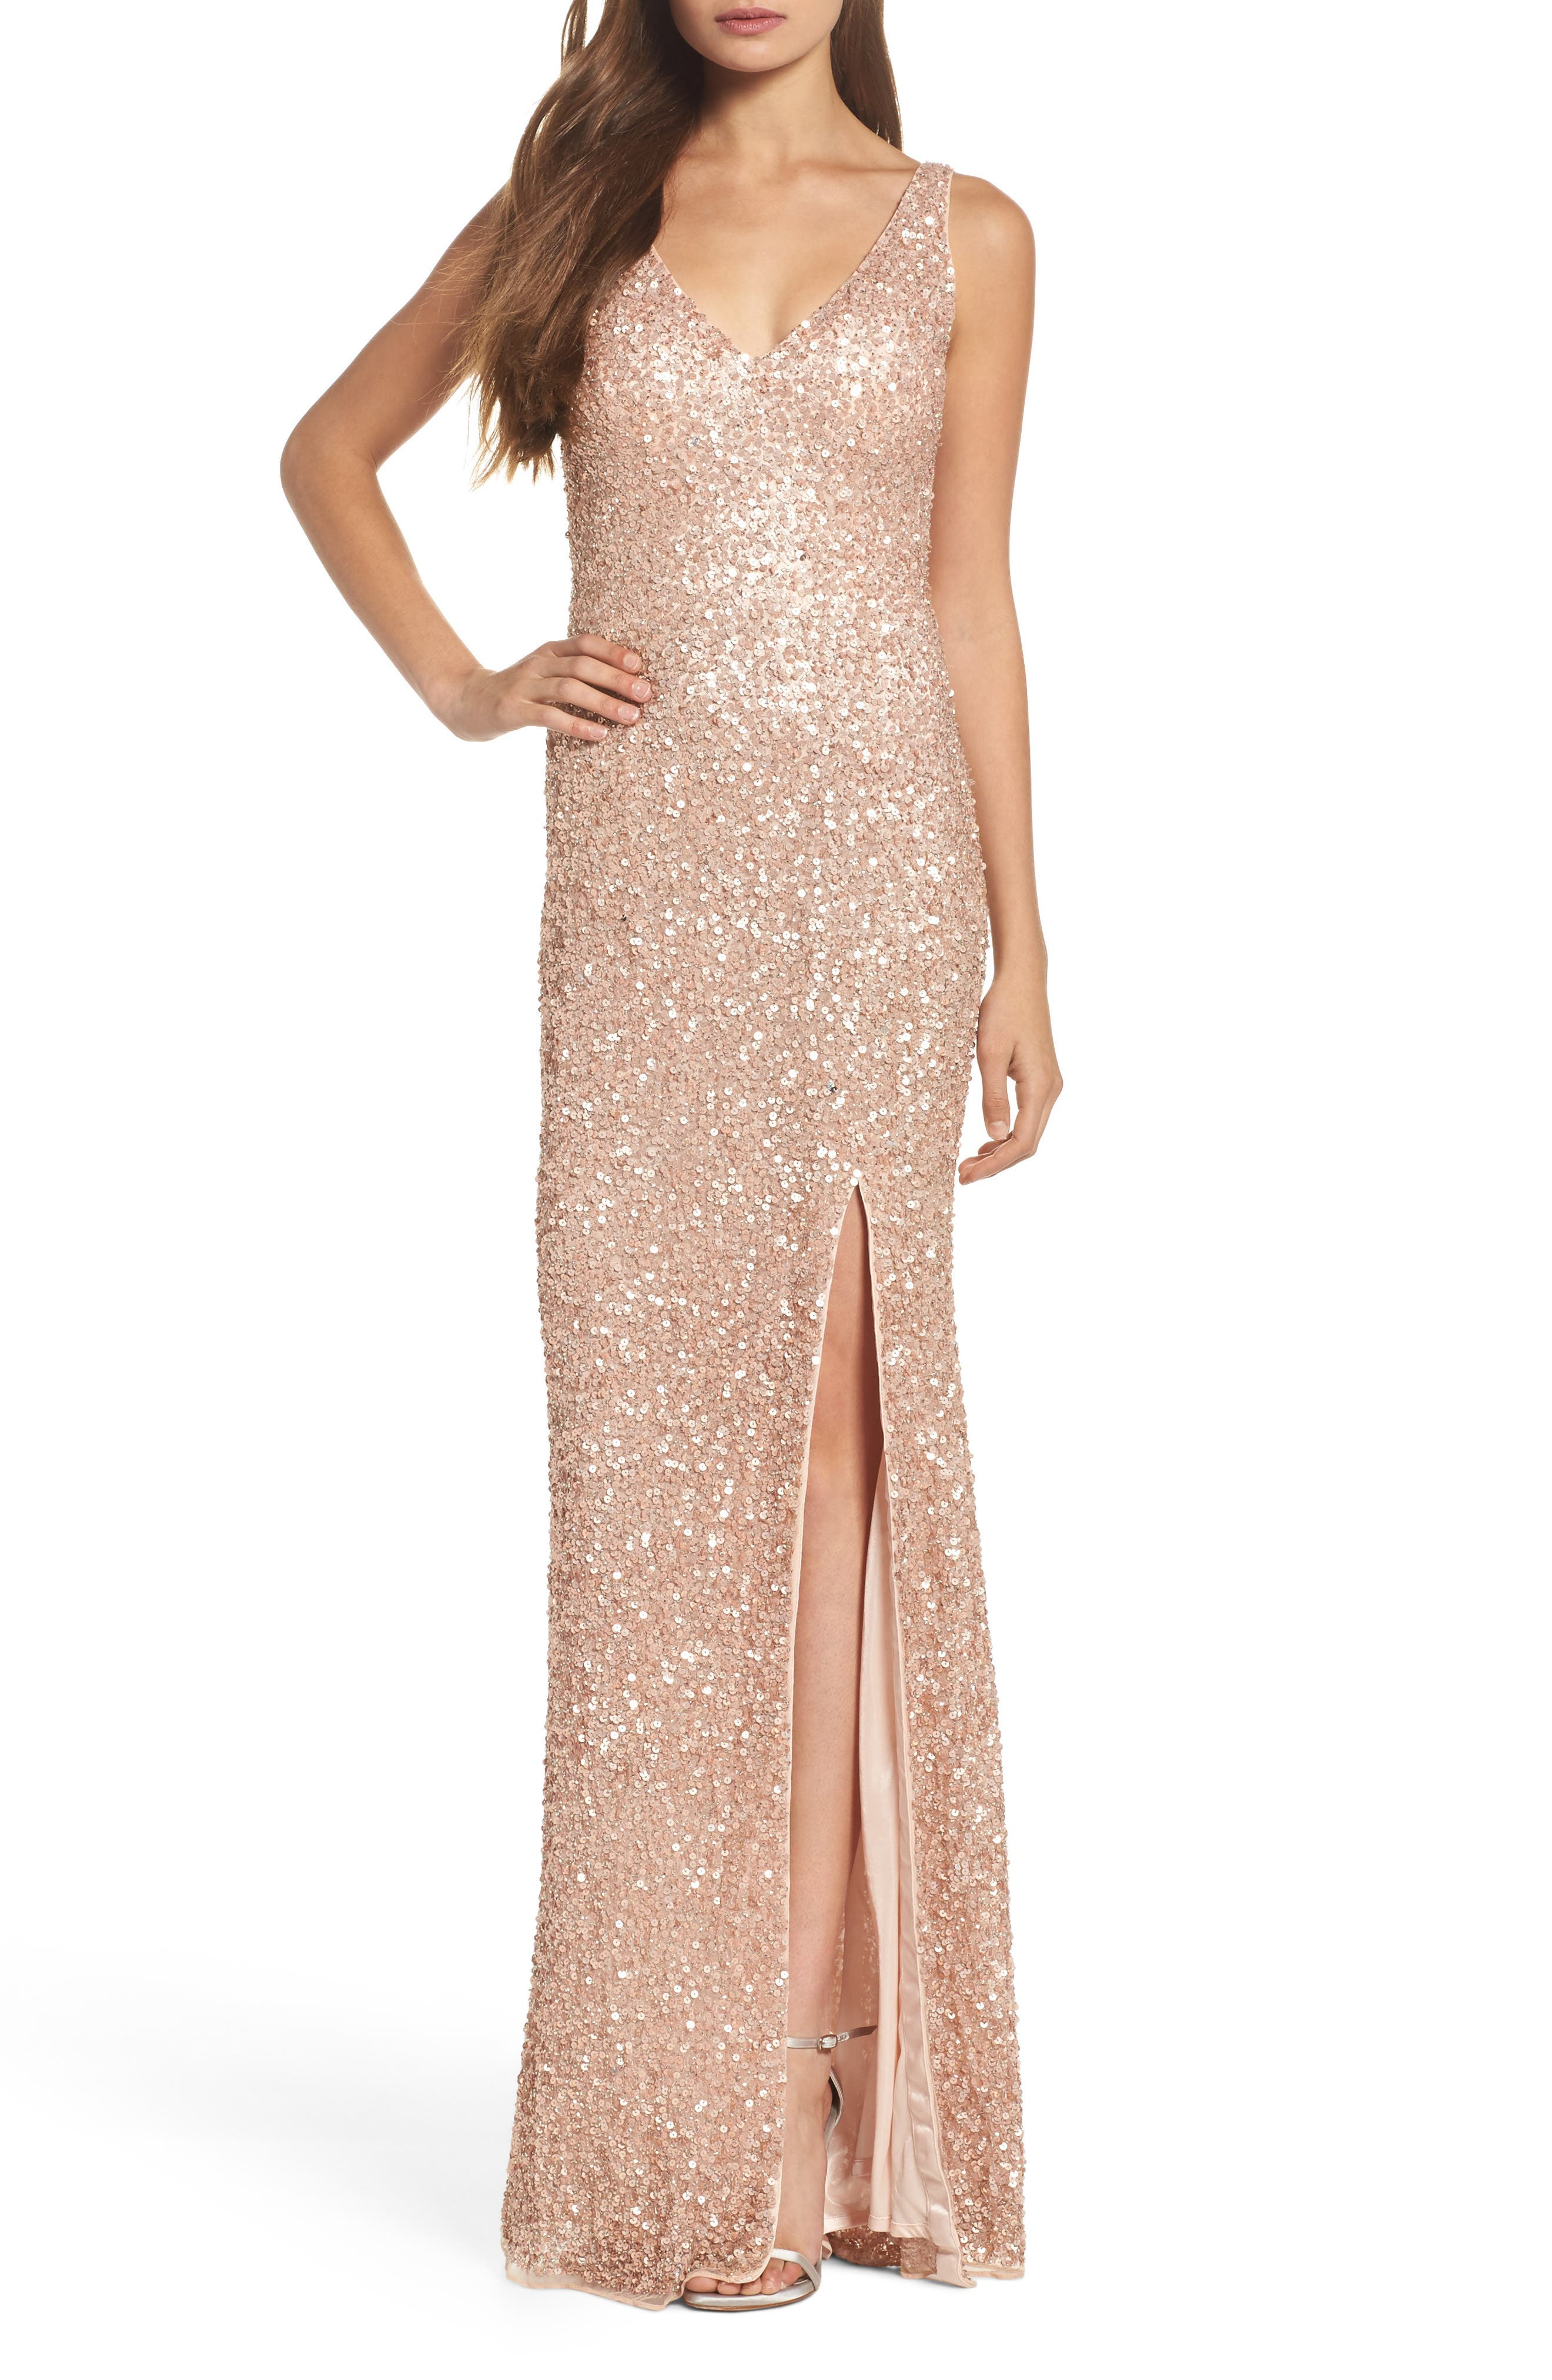 MAC DUGGAL, Sequin Slit Gown, Main thumbnail 1, color, ROSE GOLD